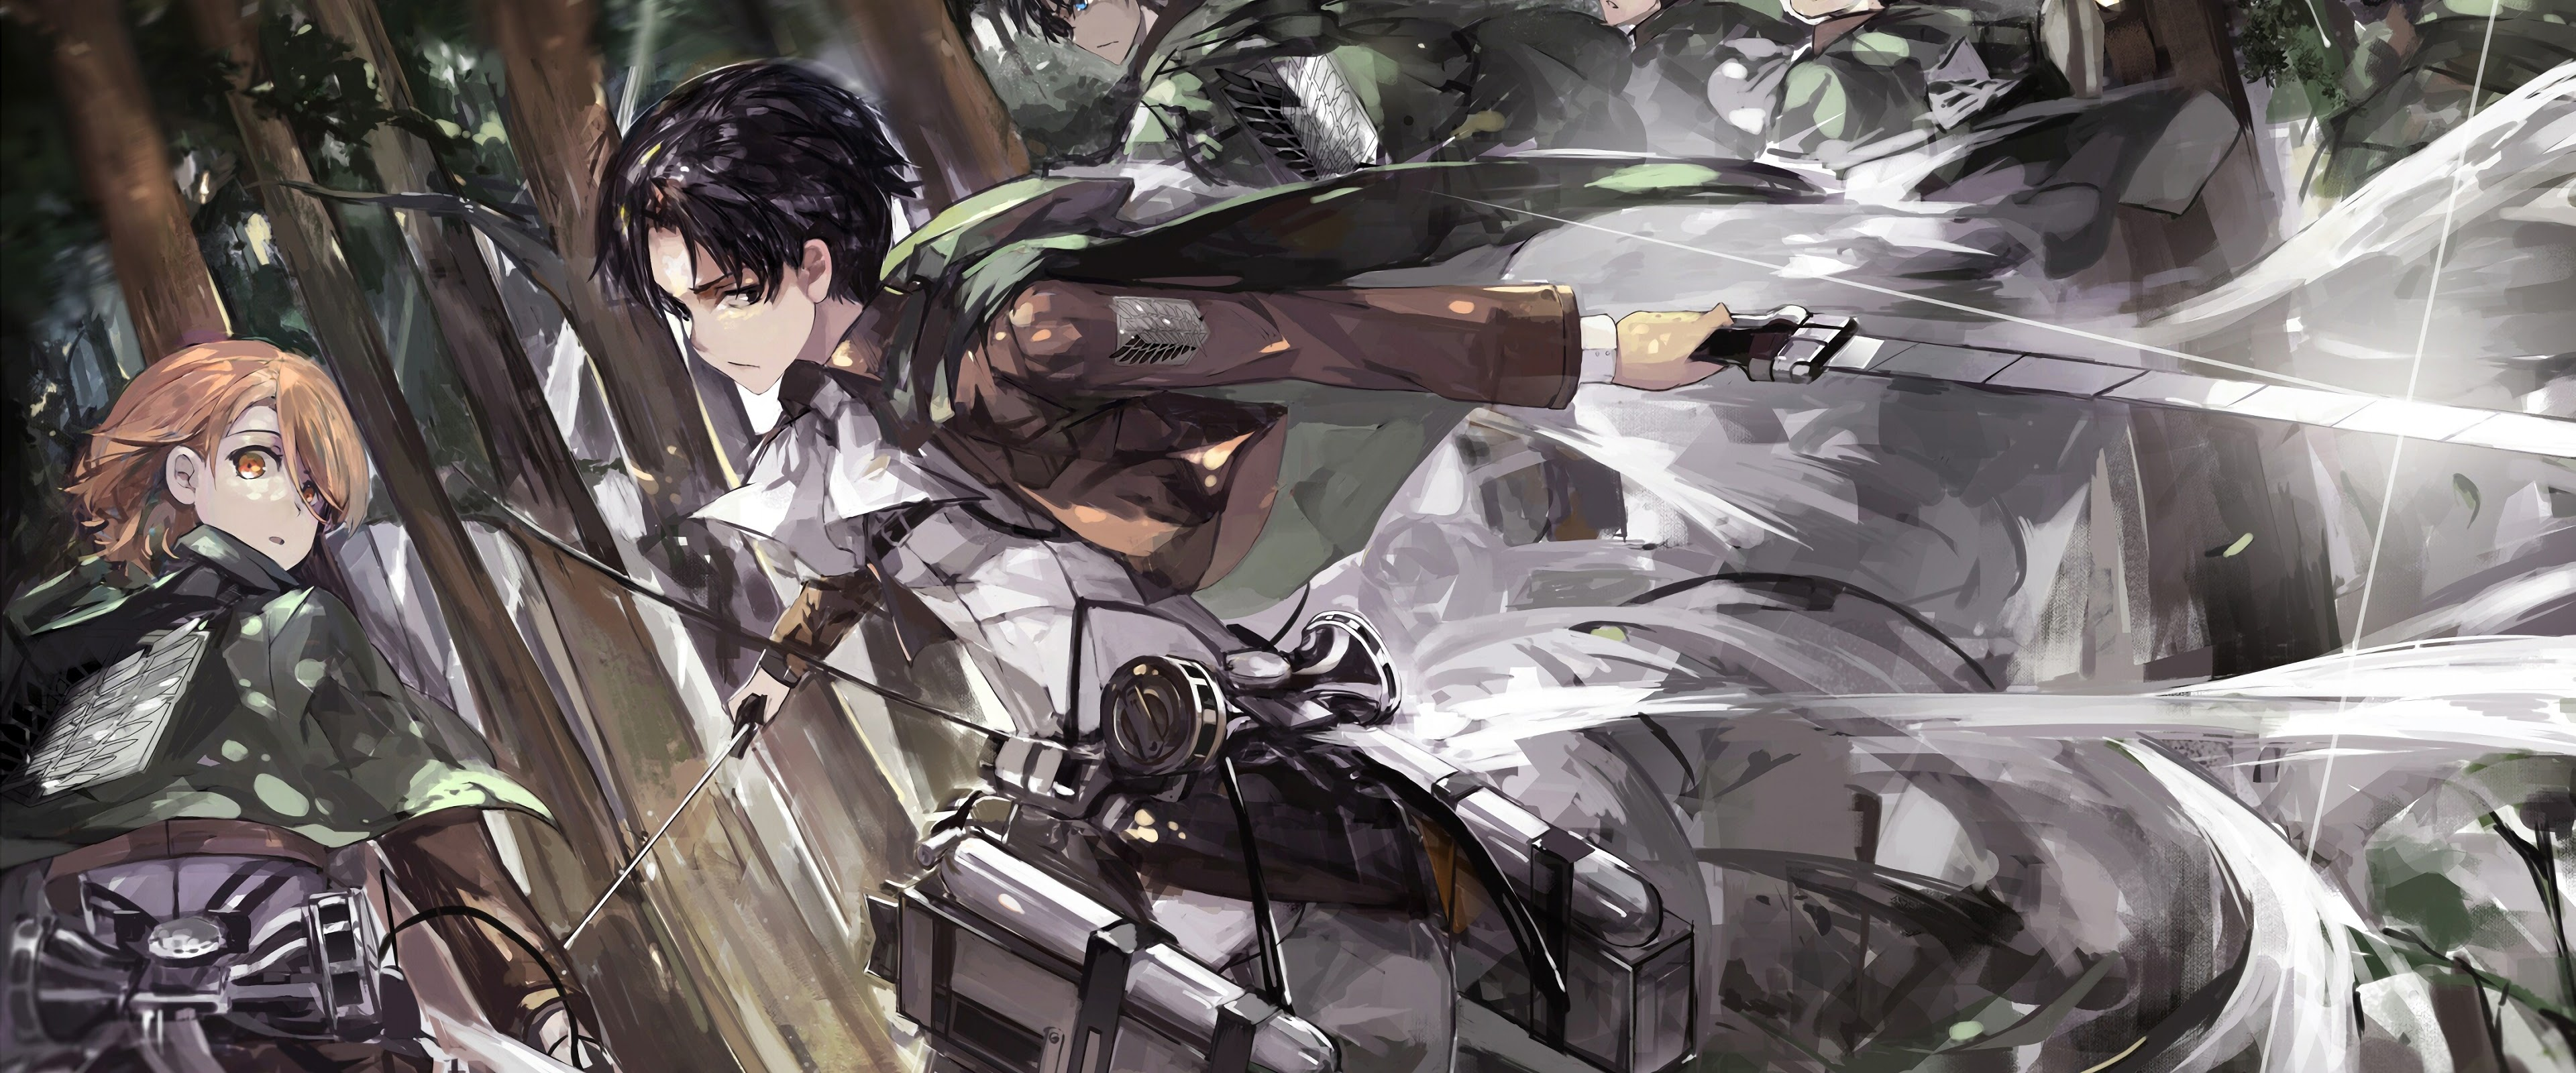 Levi Eren Survey Corps Attack On Titan 4k Wallpaper 75